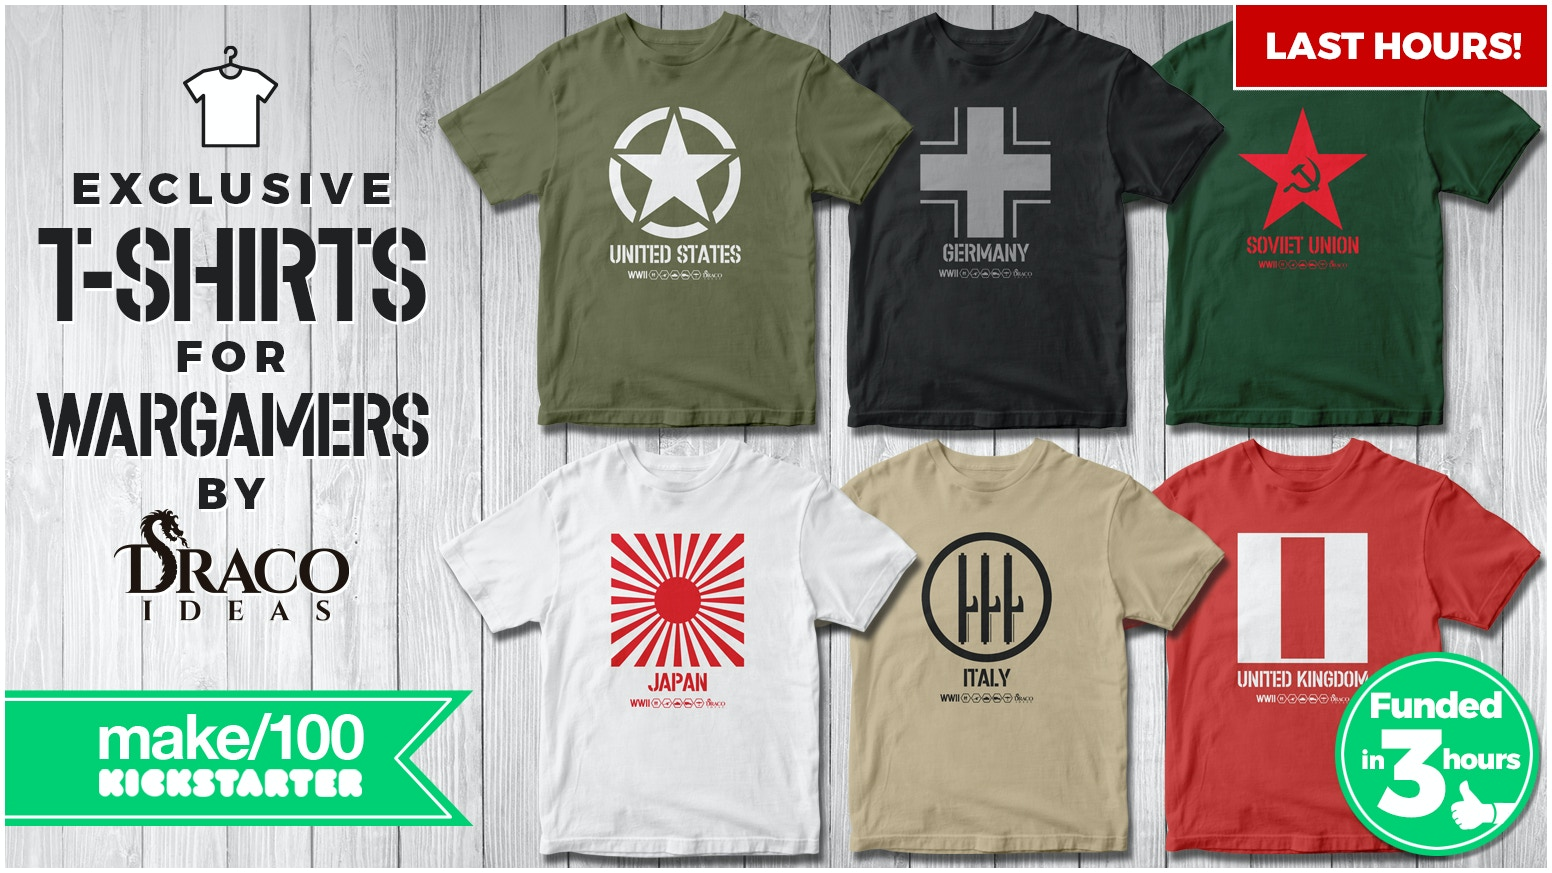 MAKE/100! Because every WARGAMER should wear their uniform to battle...  T-SHIRTS of your faction!